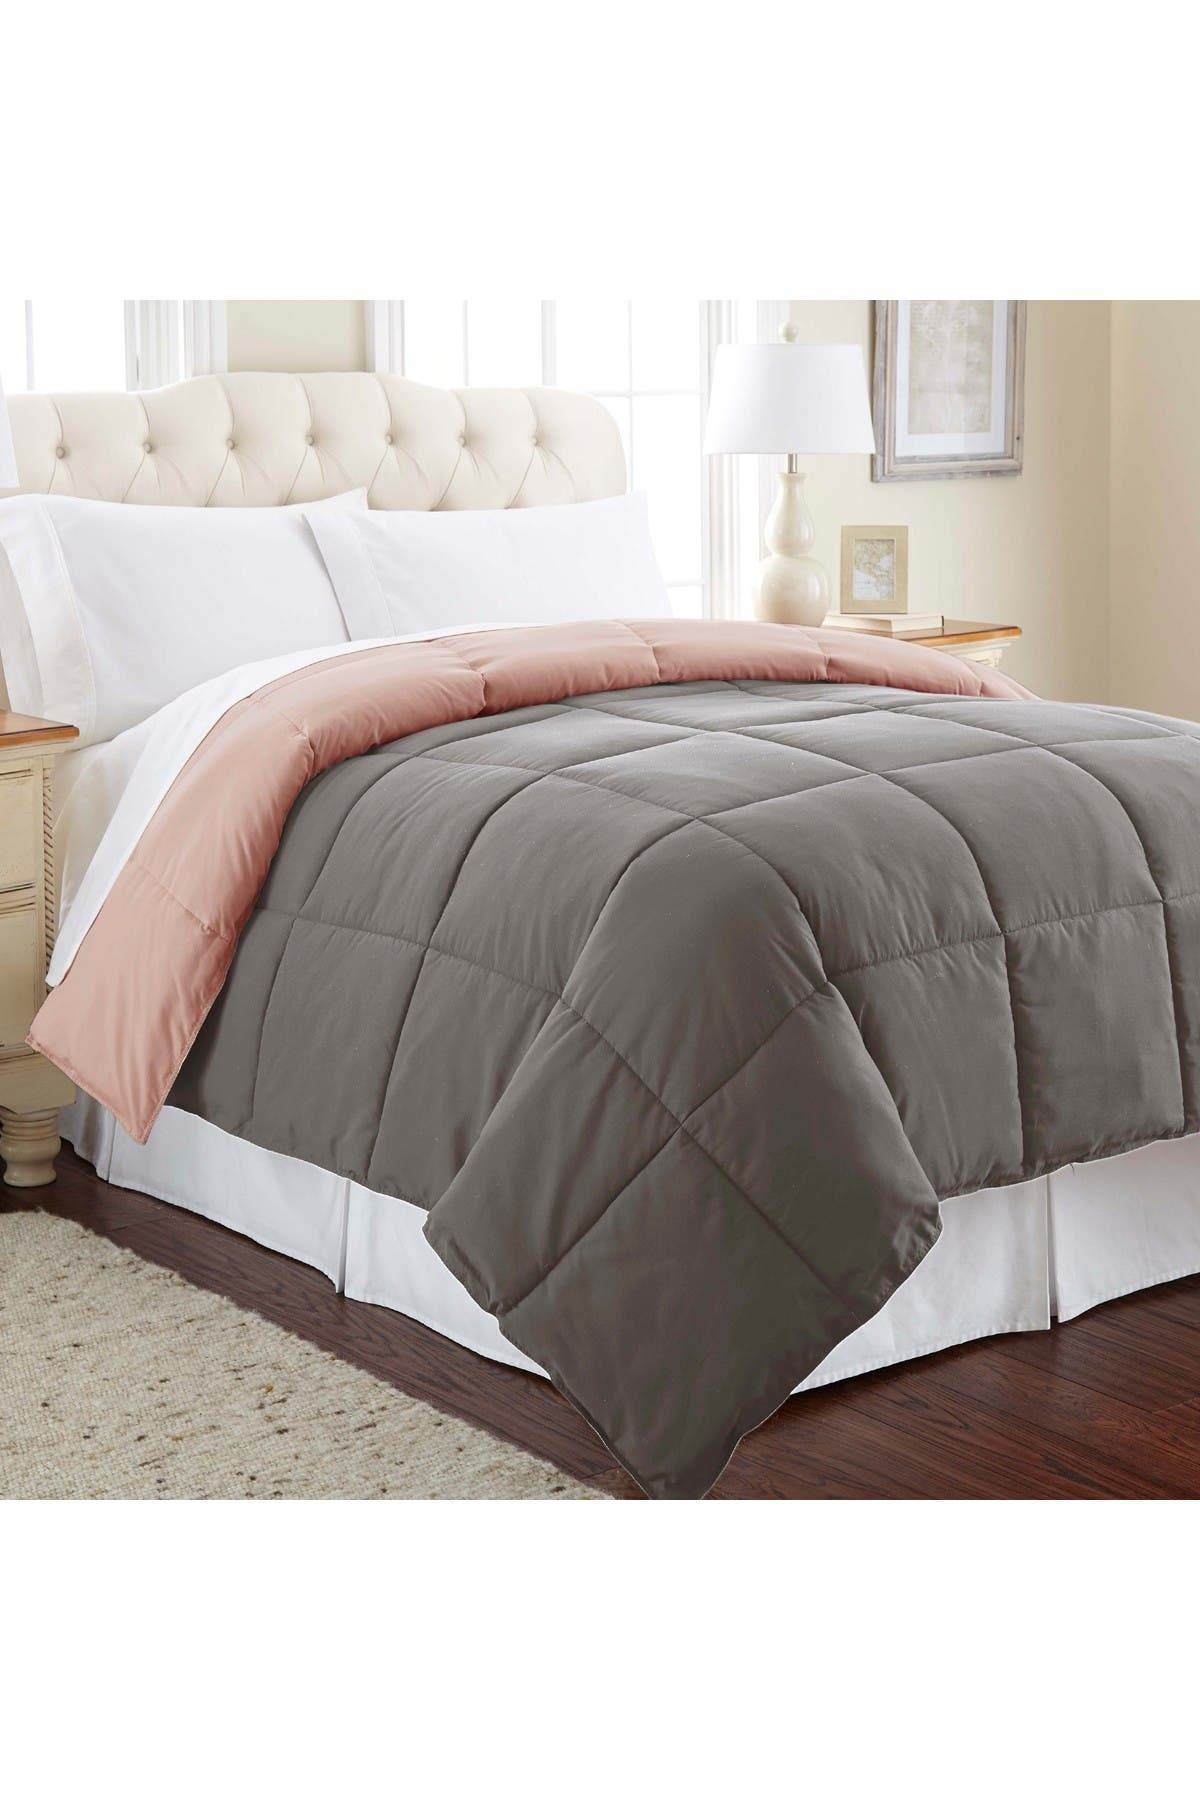 Image of Modern Threads Twin Down Alternative Reversible Comforter - Charcoal/Misty Rose